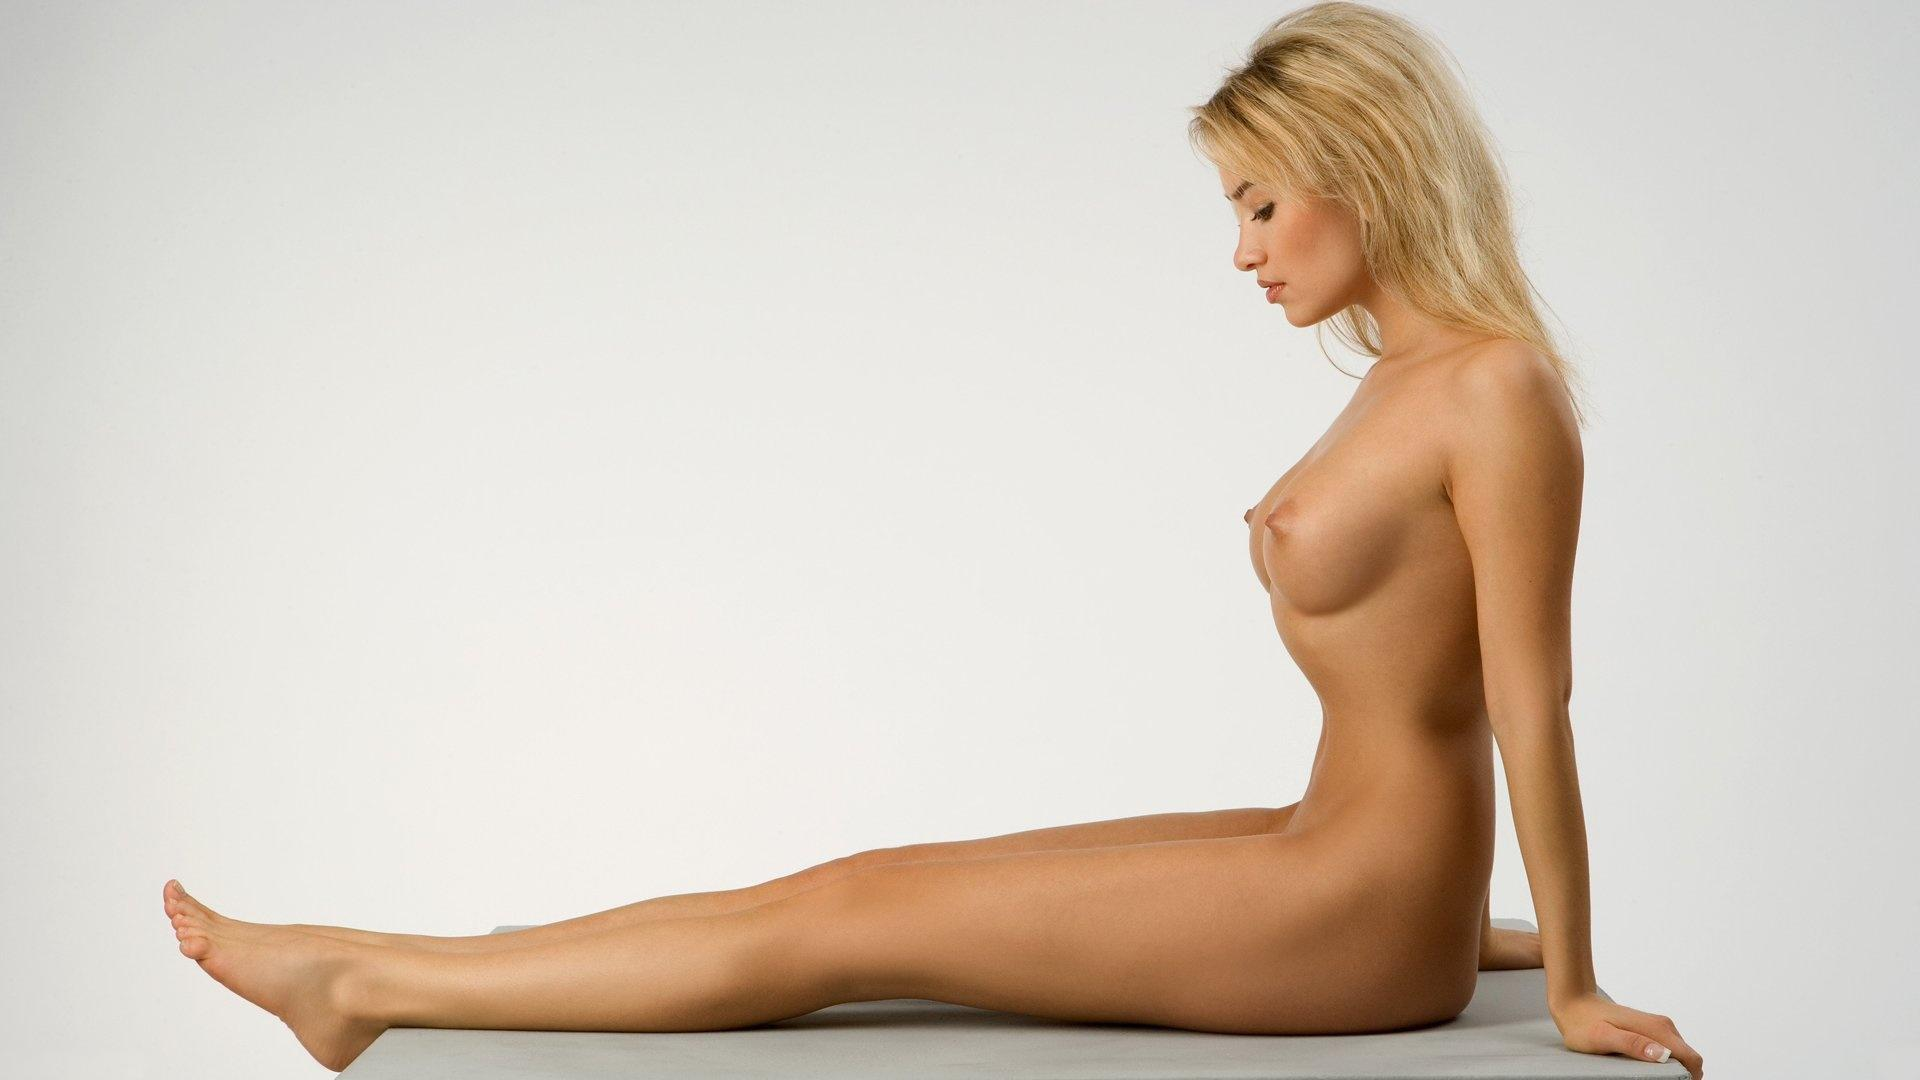 Lia may nude wallpaper 1920 x 1080 for